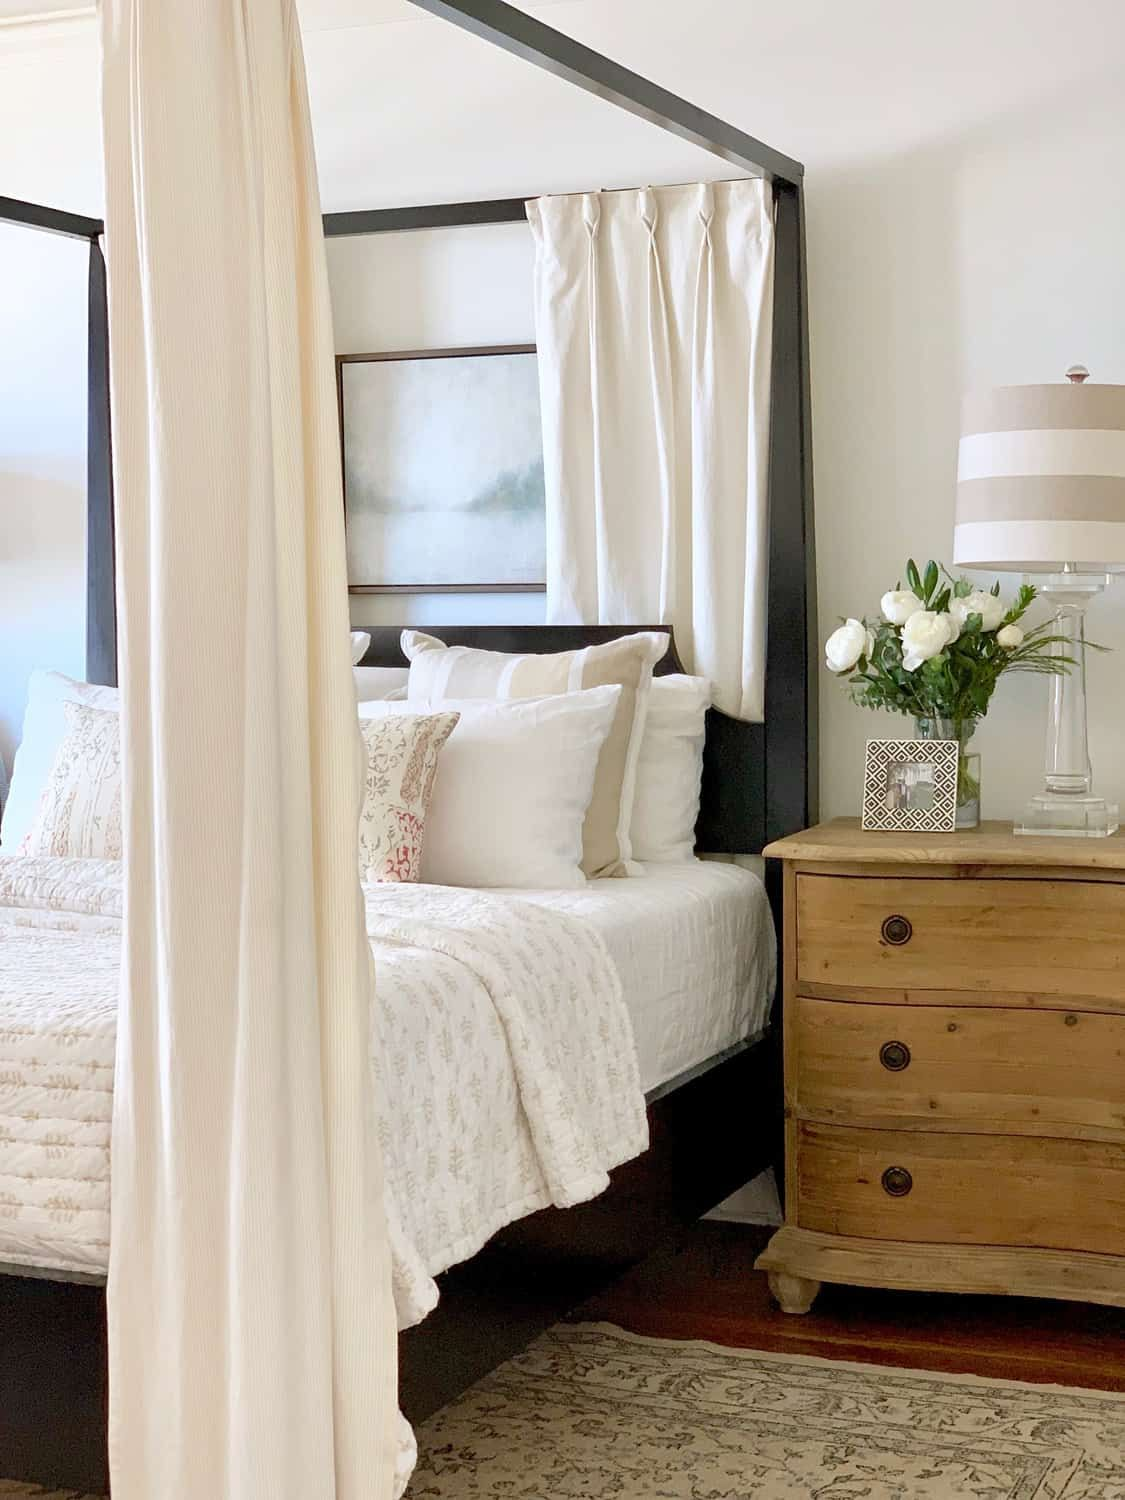 Serene bedroom decor with black and white and curtains on poster bed - Classic Casual Home. #bedroomdecor #blackbed #bedroomfurniture #classicbedroom #blackandwhite